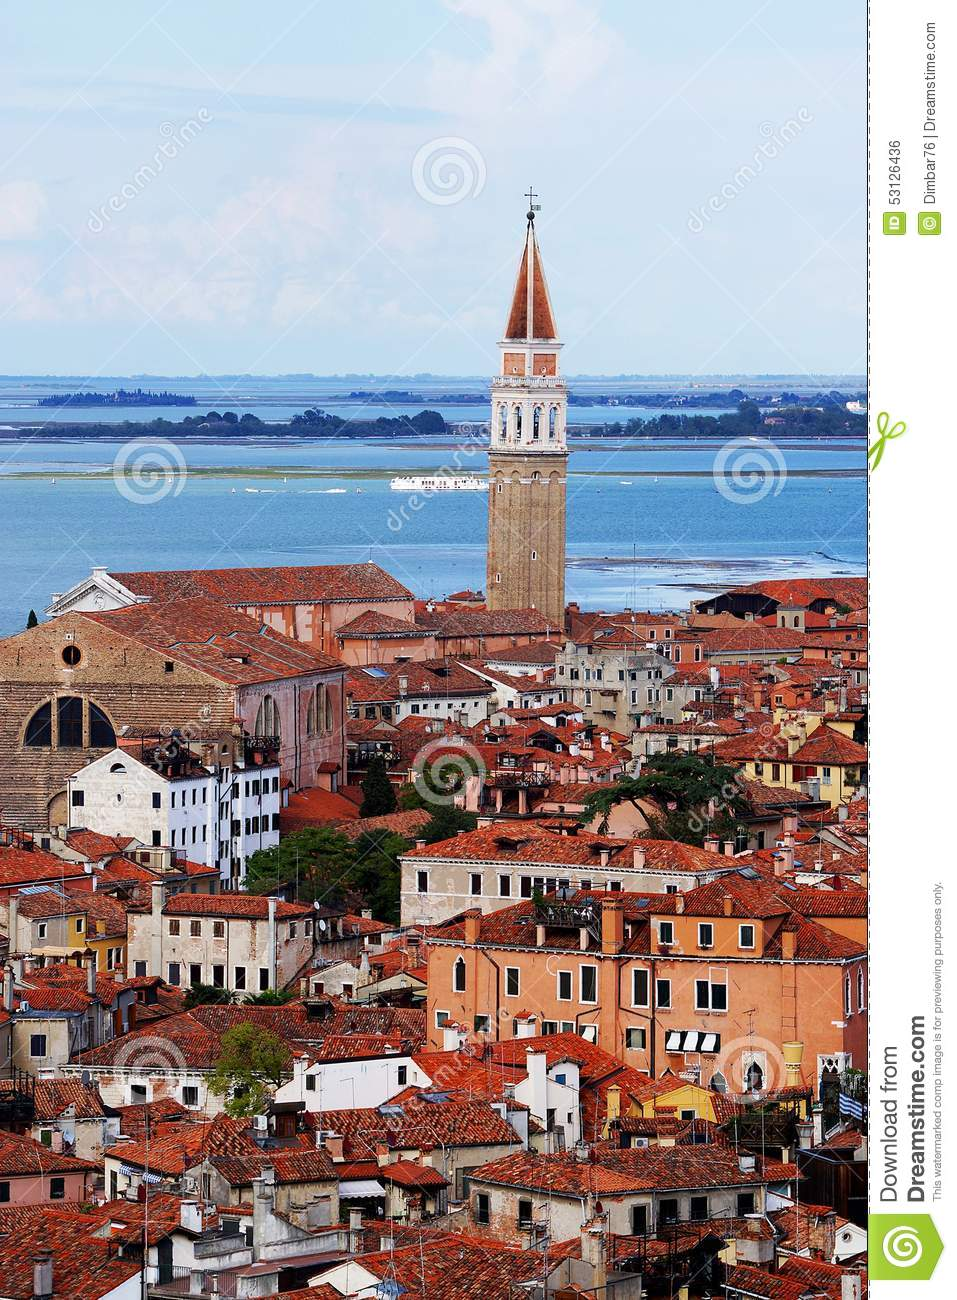 Panorama of Venice in Italy